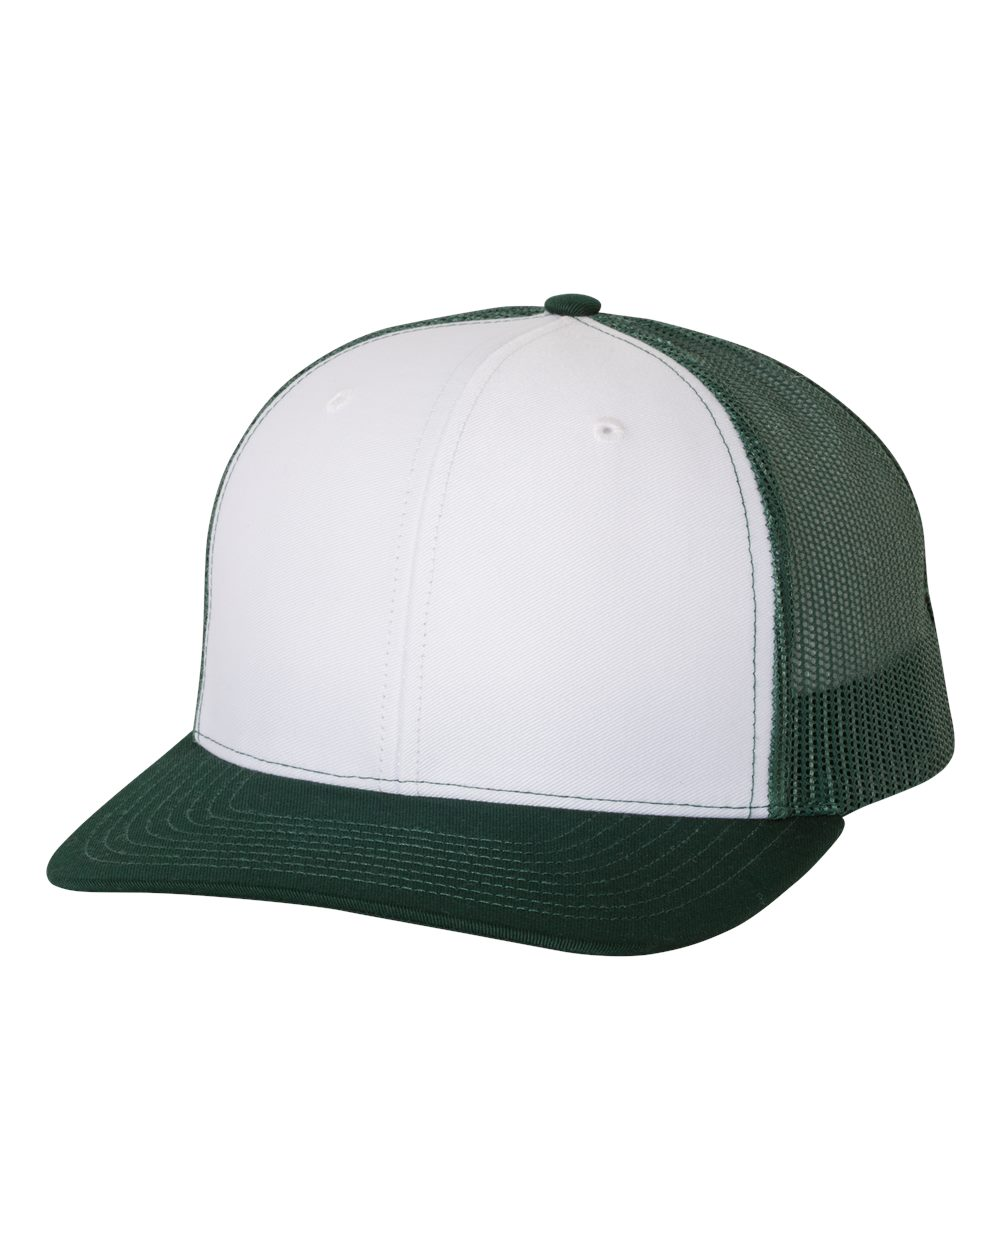 White / Dark Green